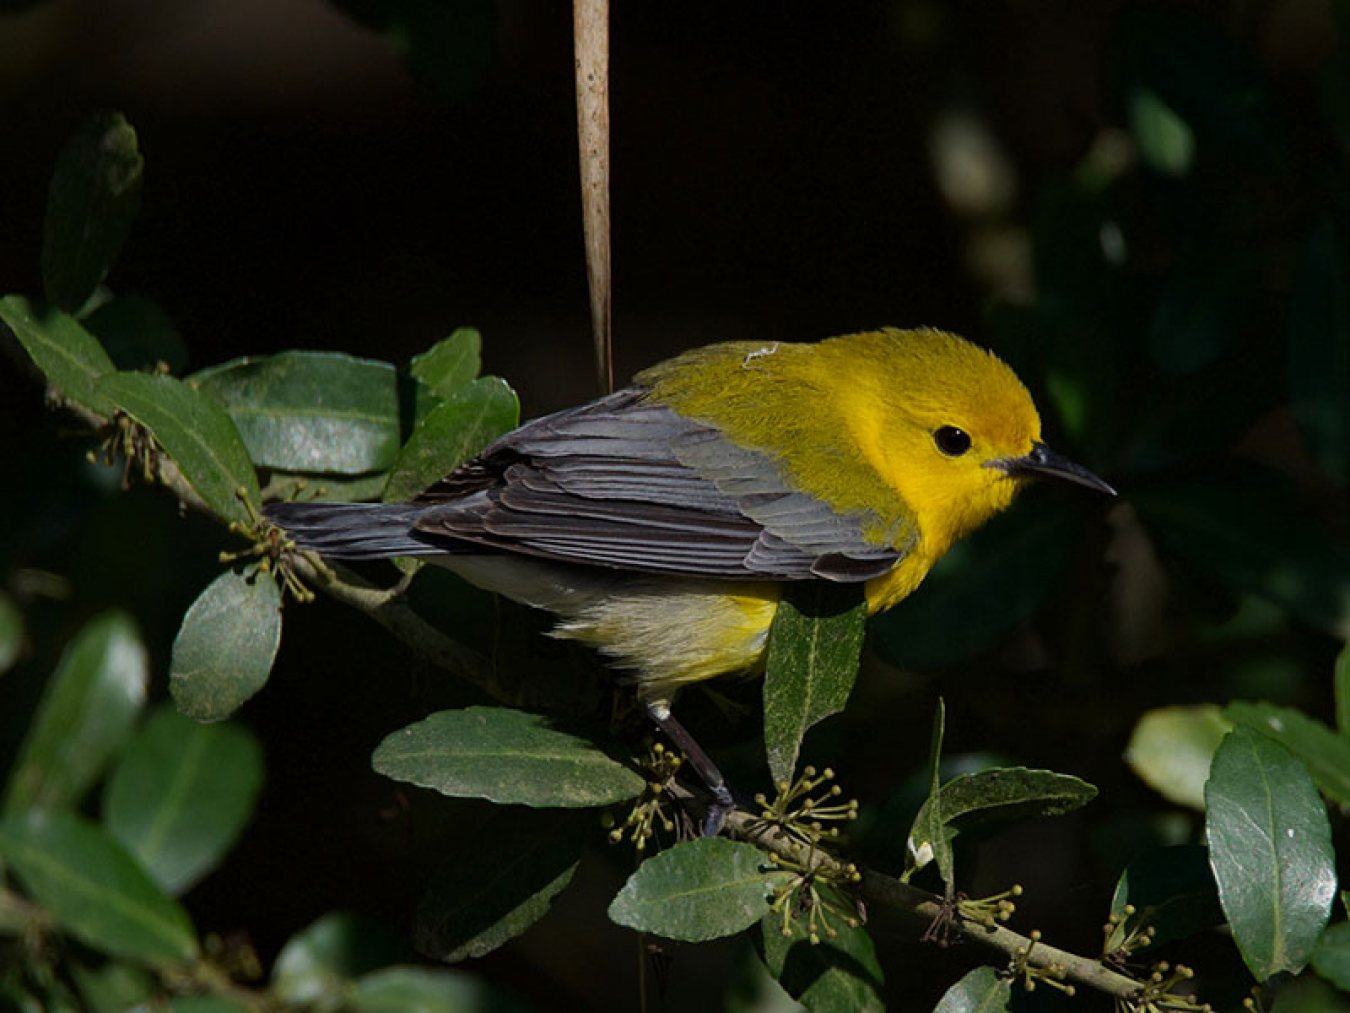 Prothonotary Warbler at CHP by Robert Kirschner